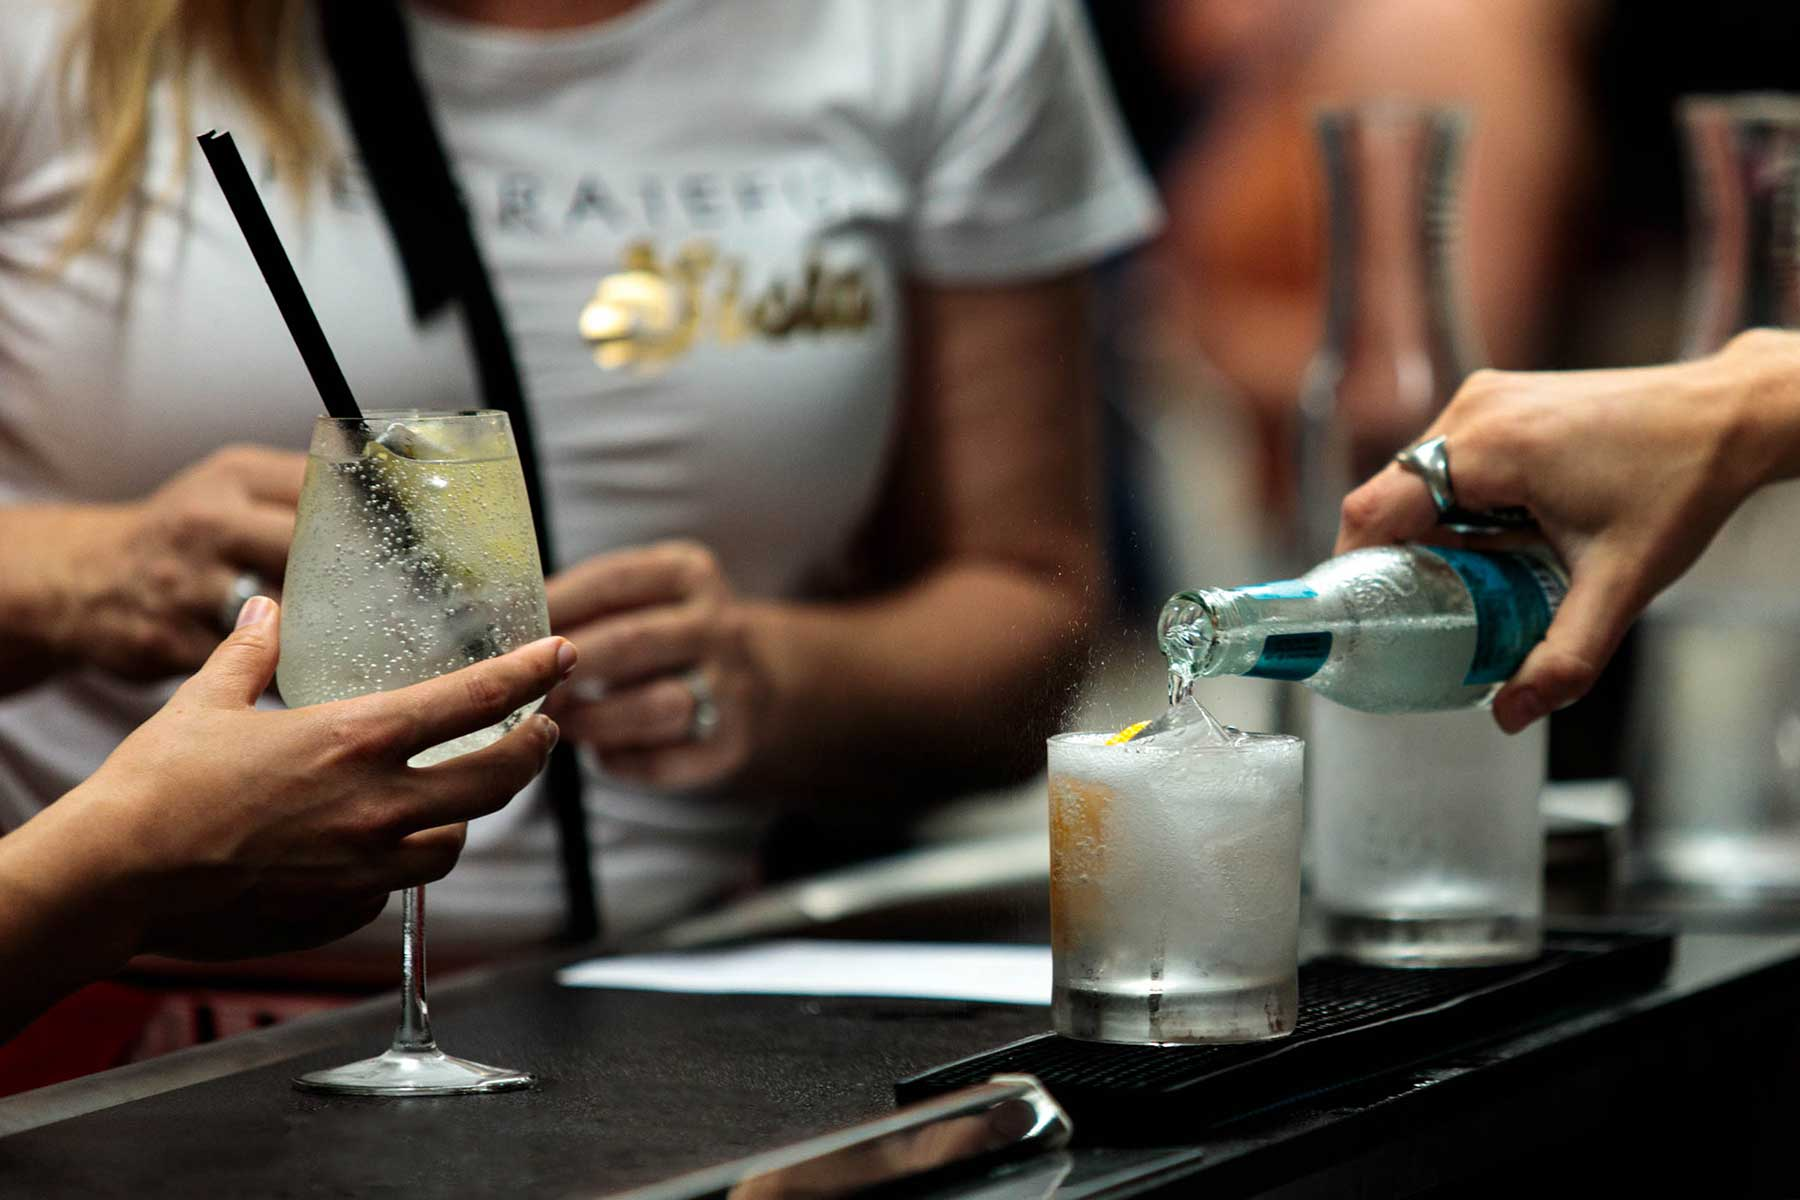 a hand pours a gin and tonic at a bar, while a customer waits